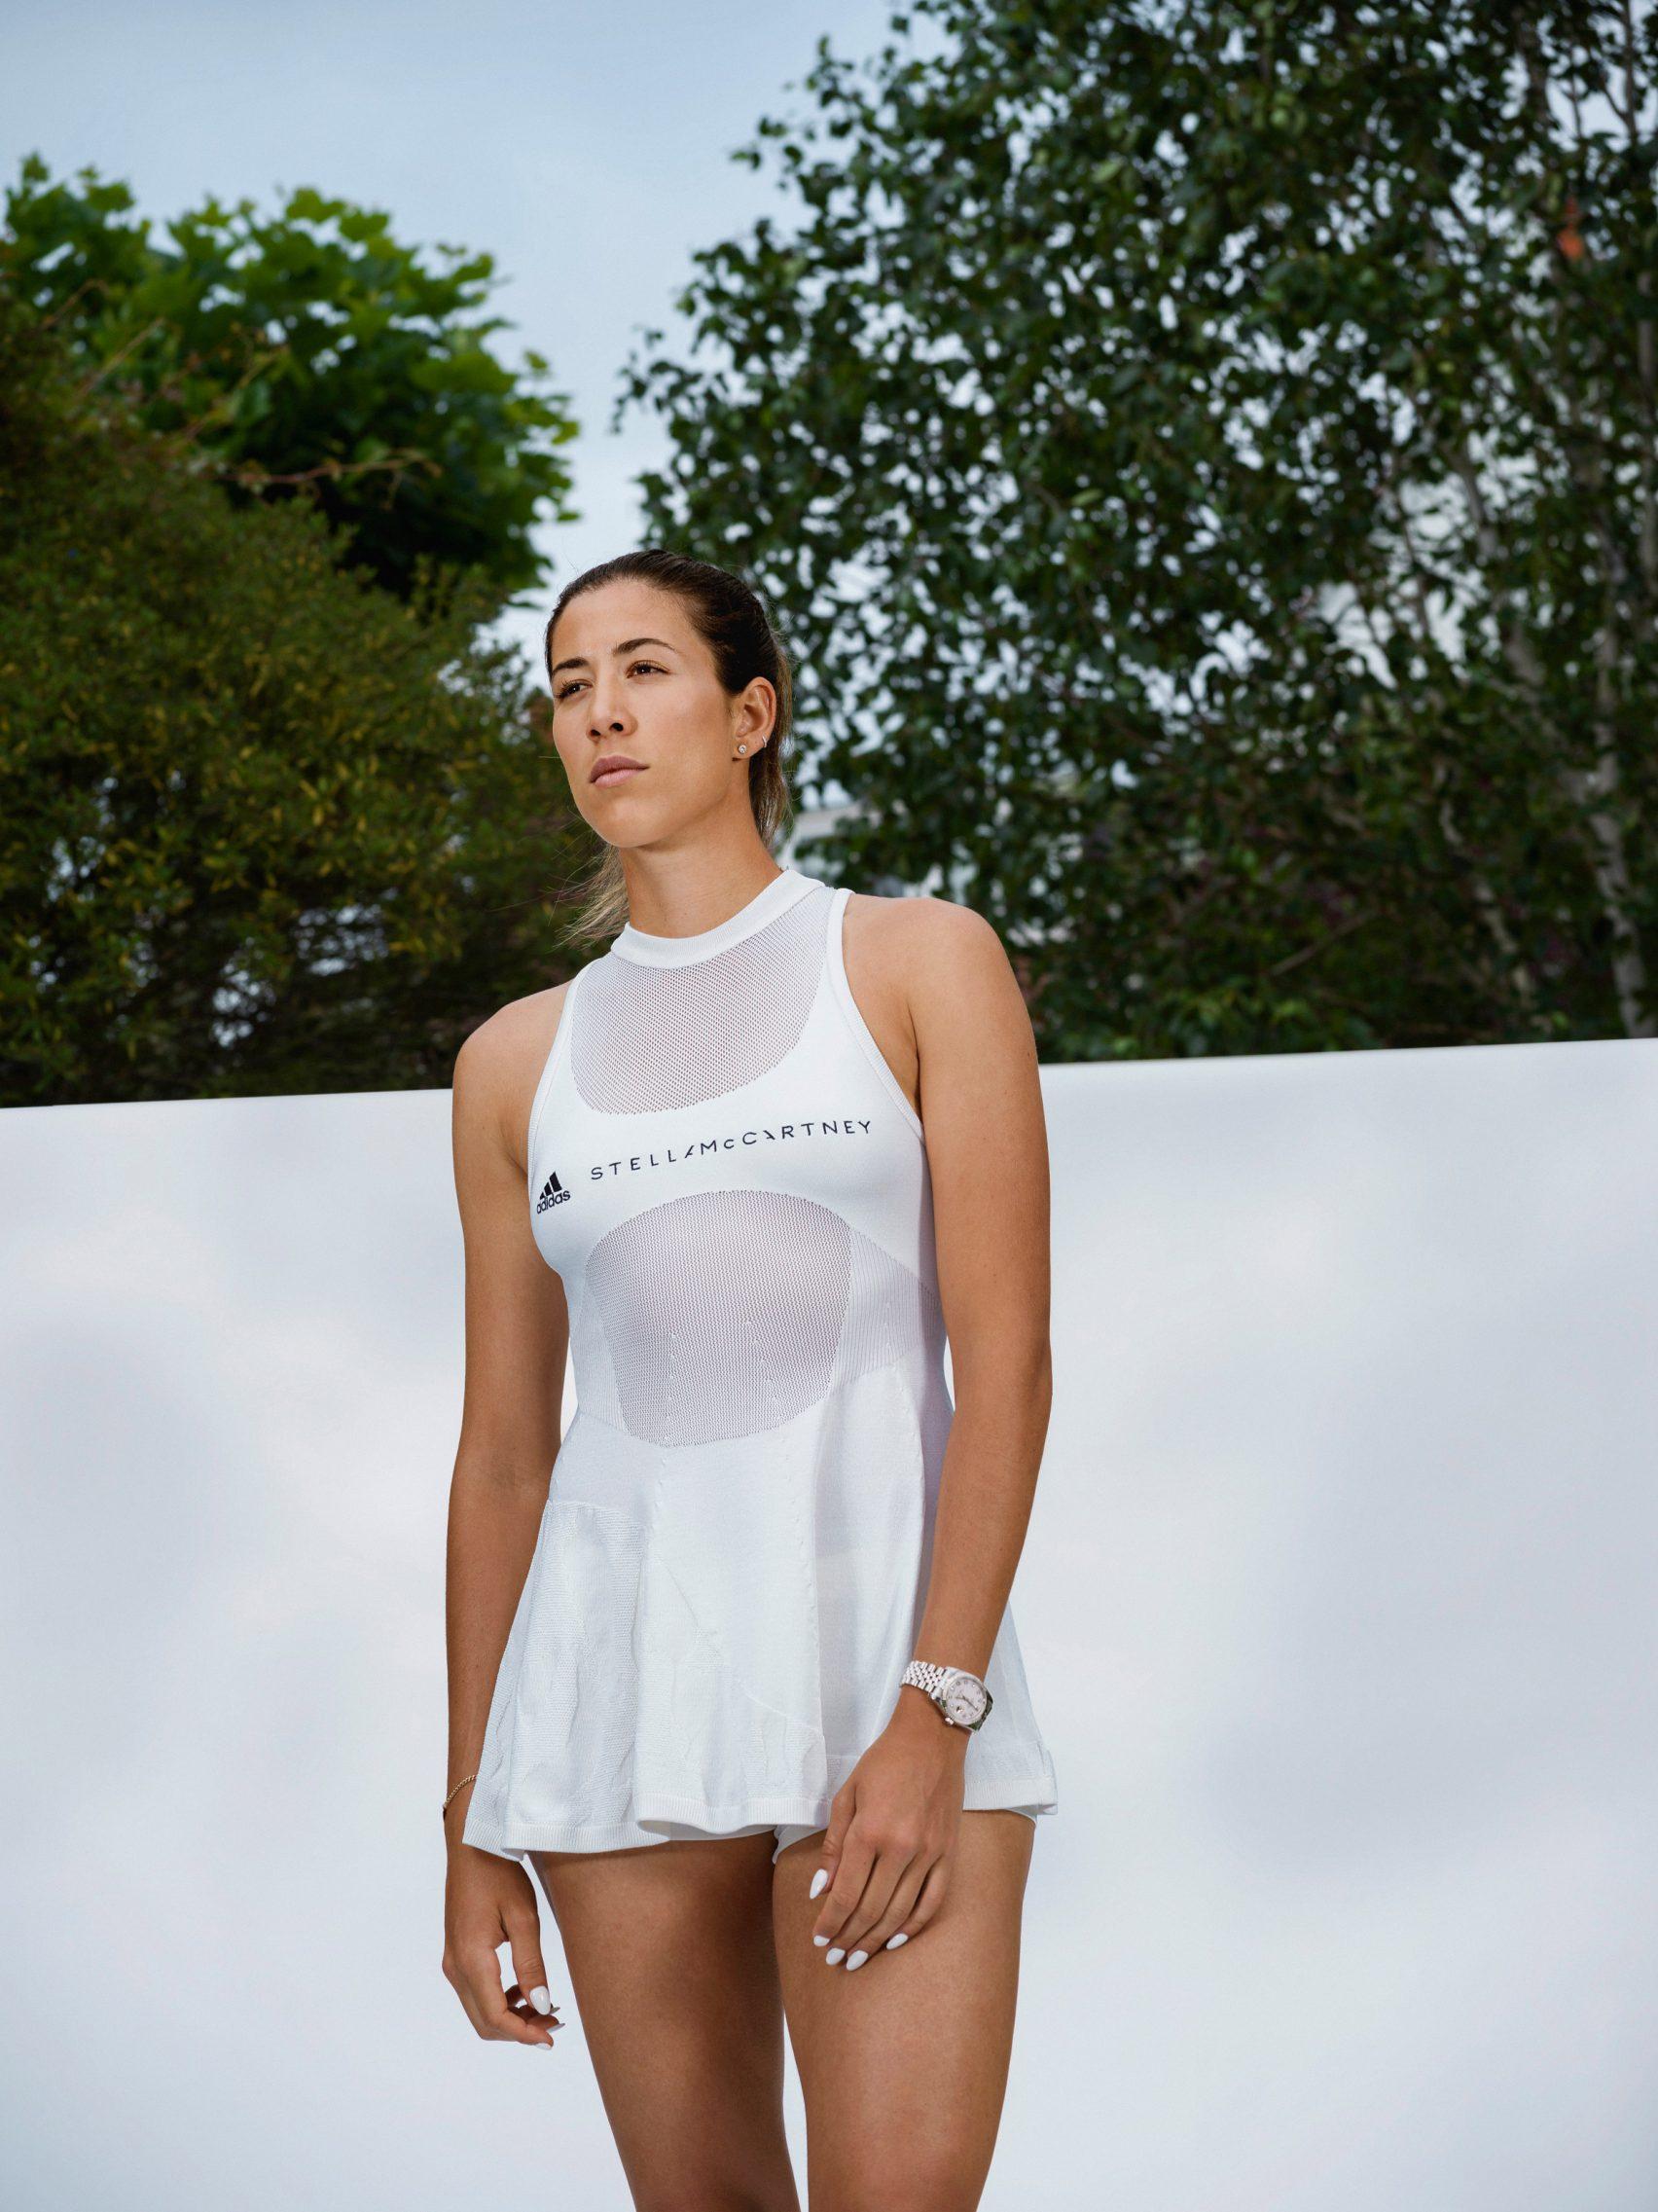 adidas-stella-mccartney-biofabric-tennis-dress-microsilk-bolt-thread-nucycl-evrnu-infinite-hoodie-_dezeen_2364_col_0-1704x2273.jpg